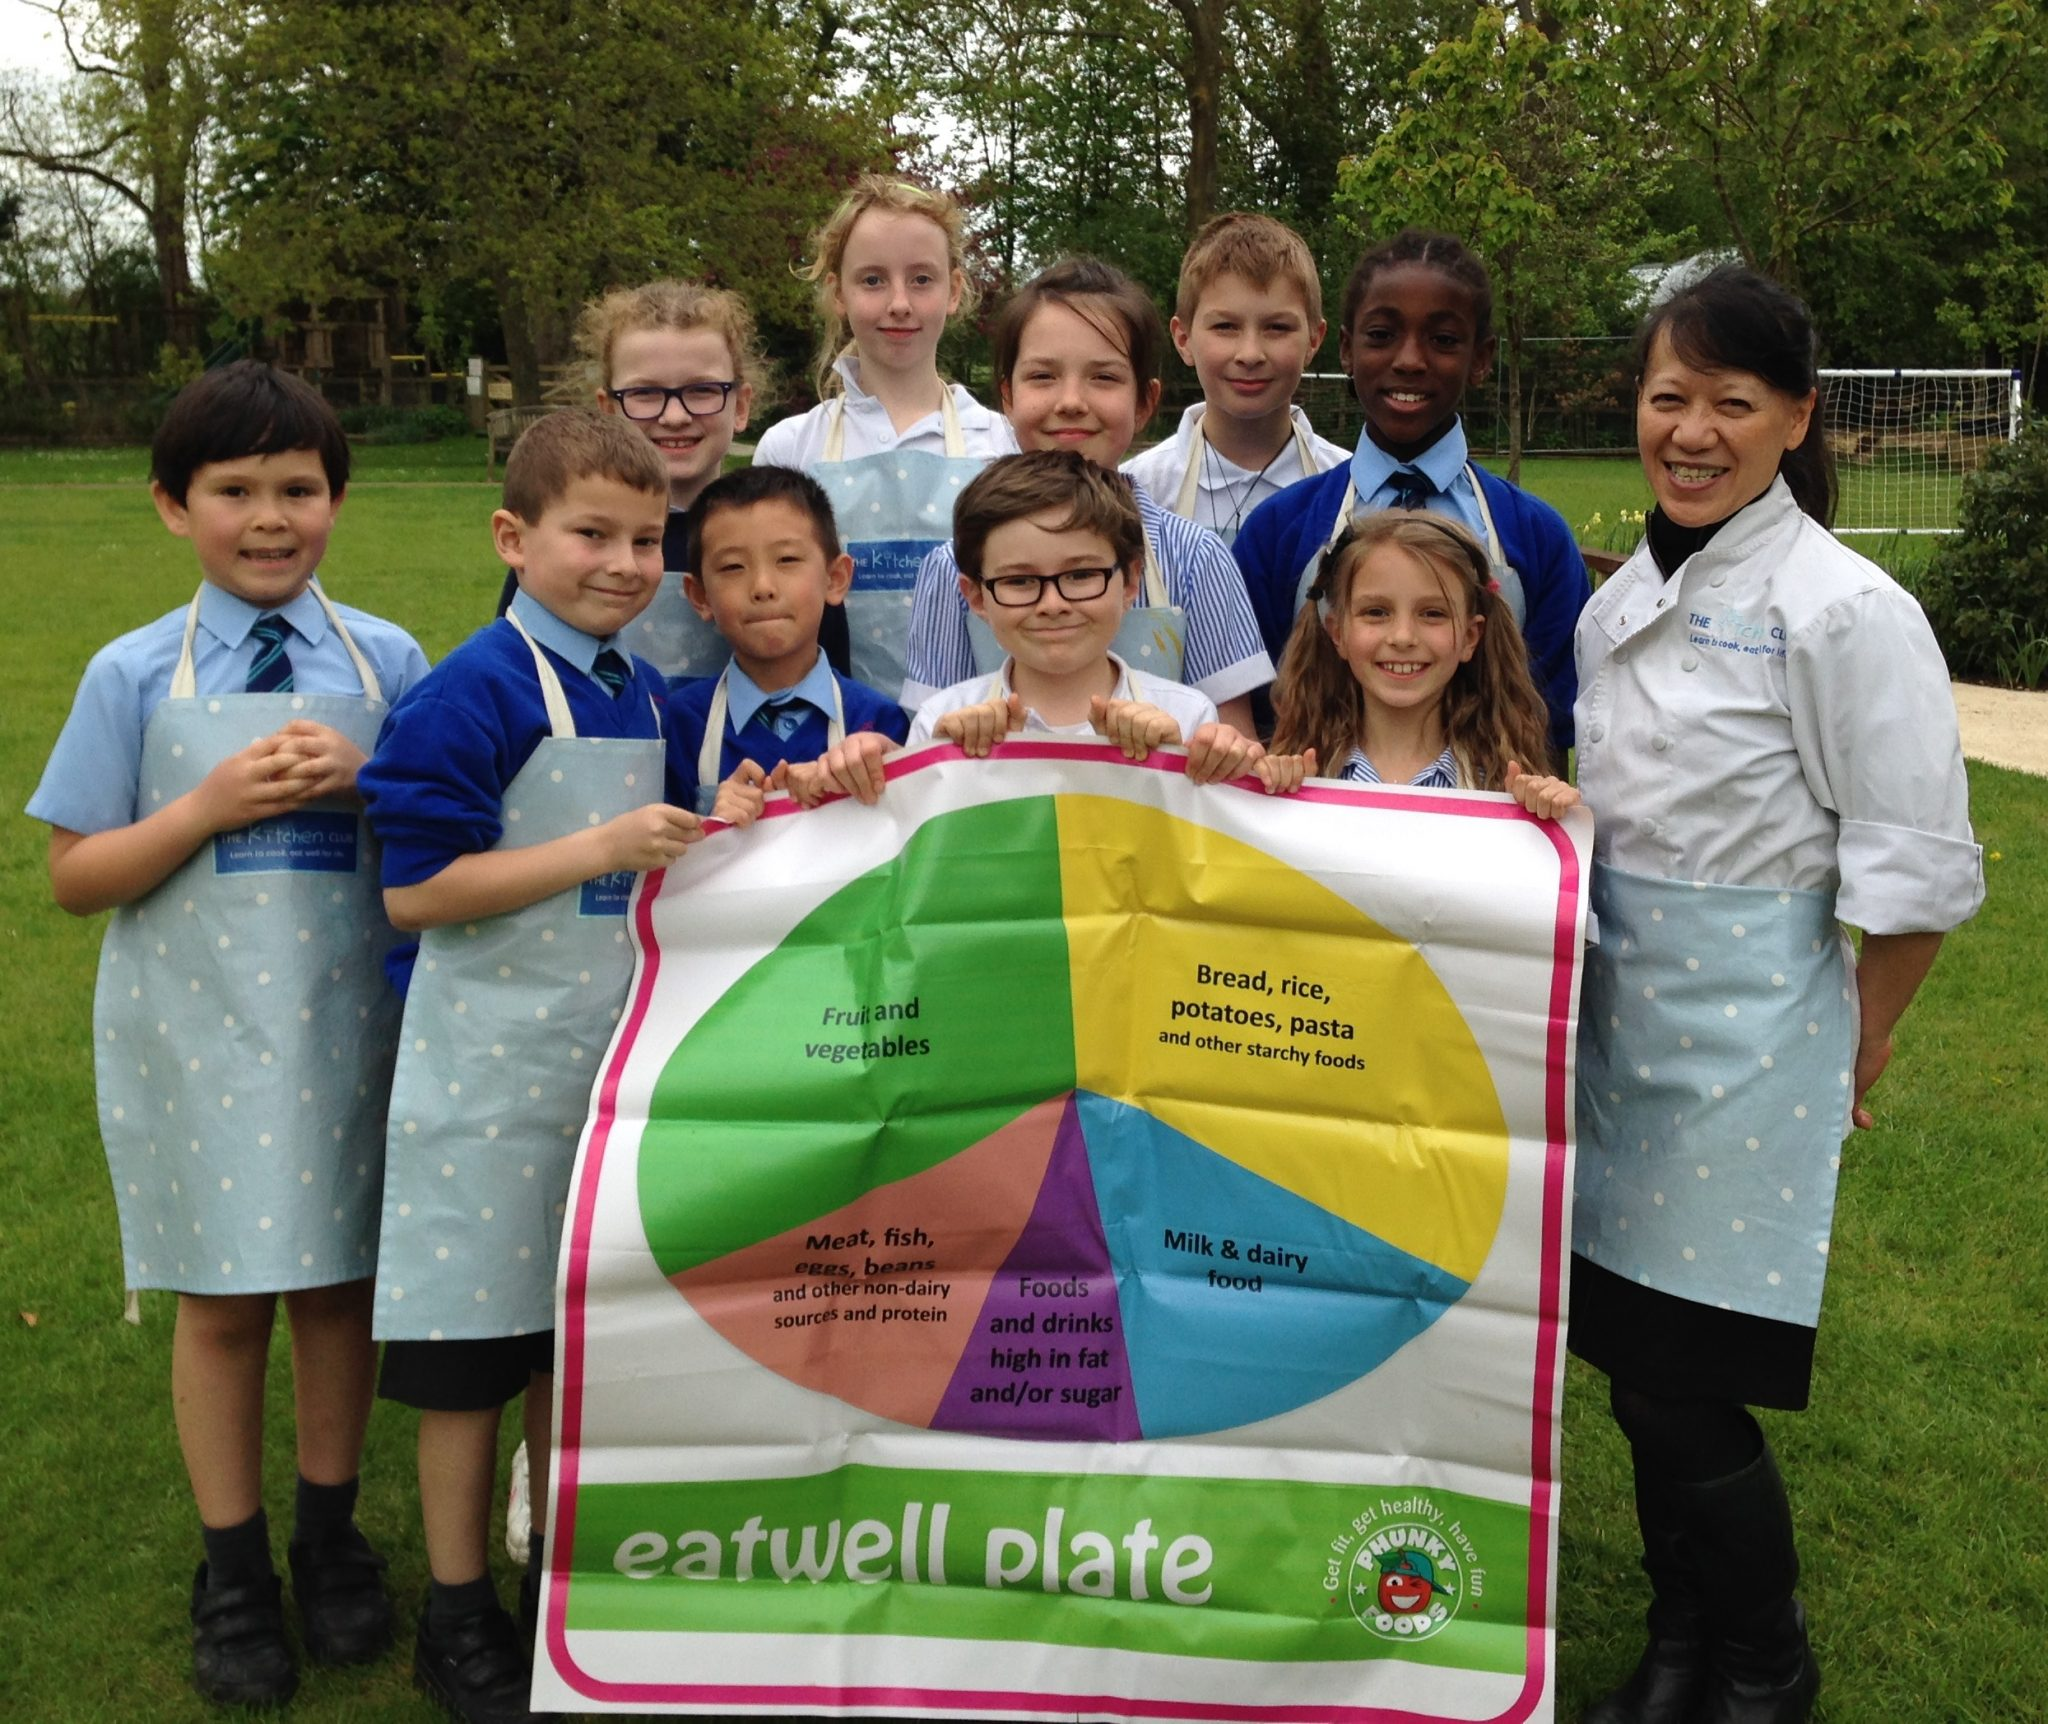 Primary schools take to the kitchen with new healthy eating initiative